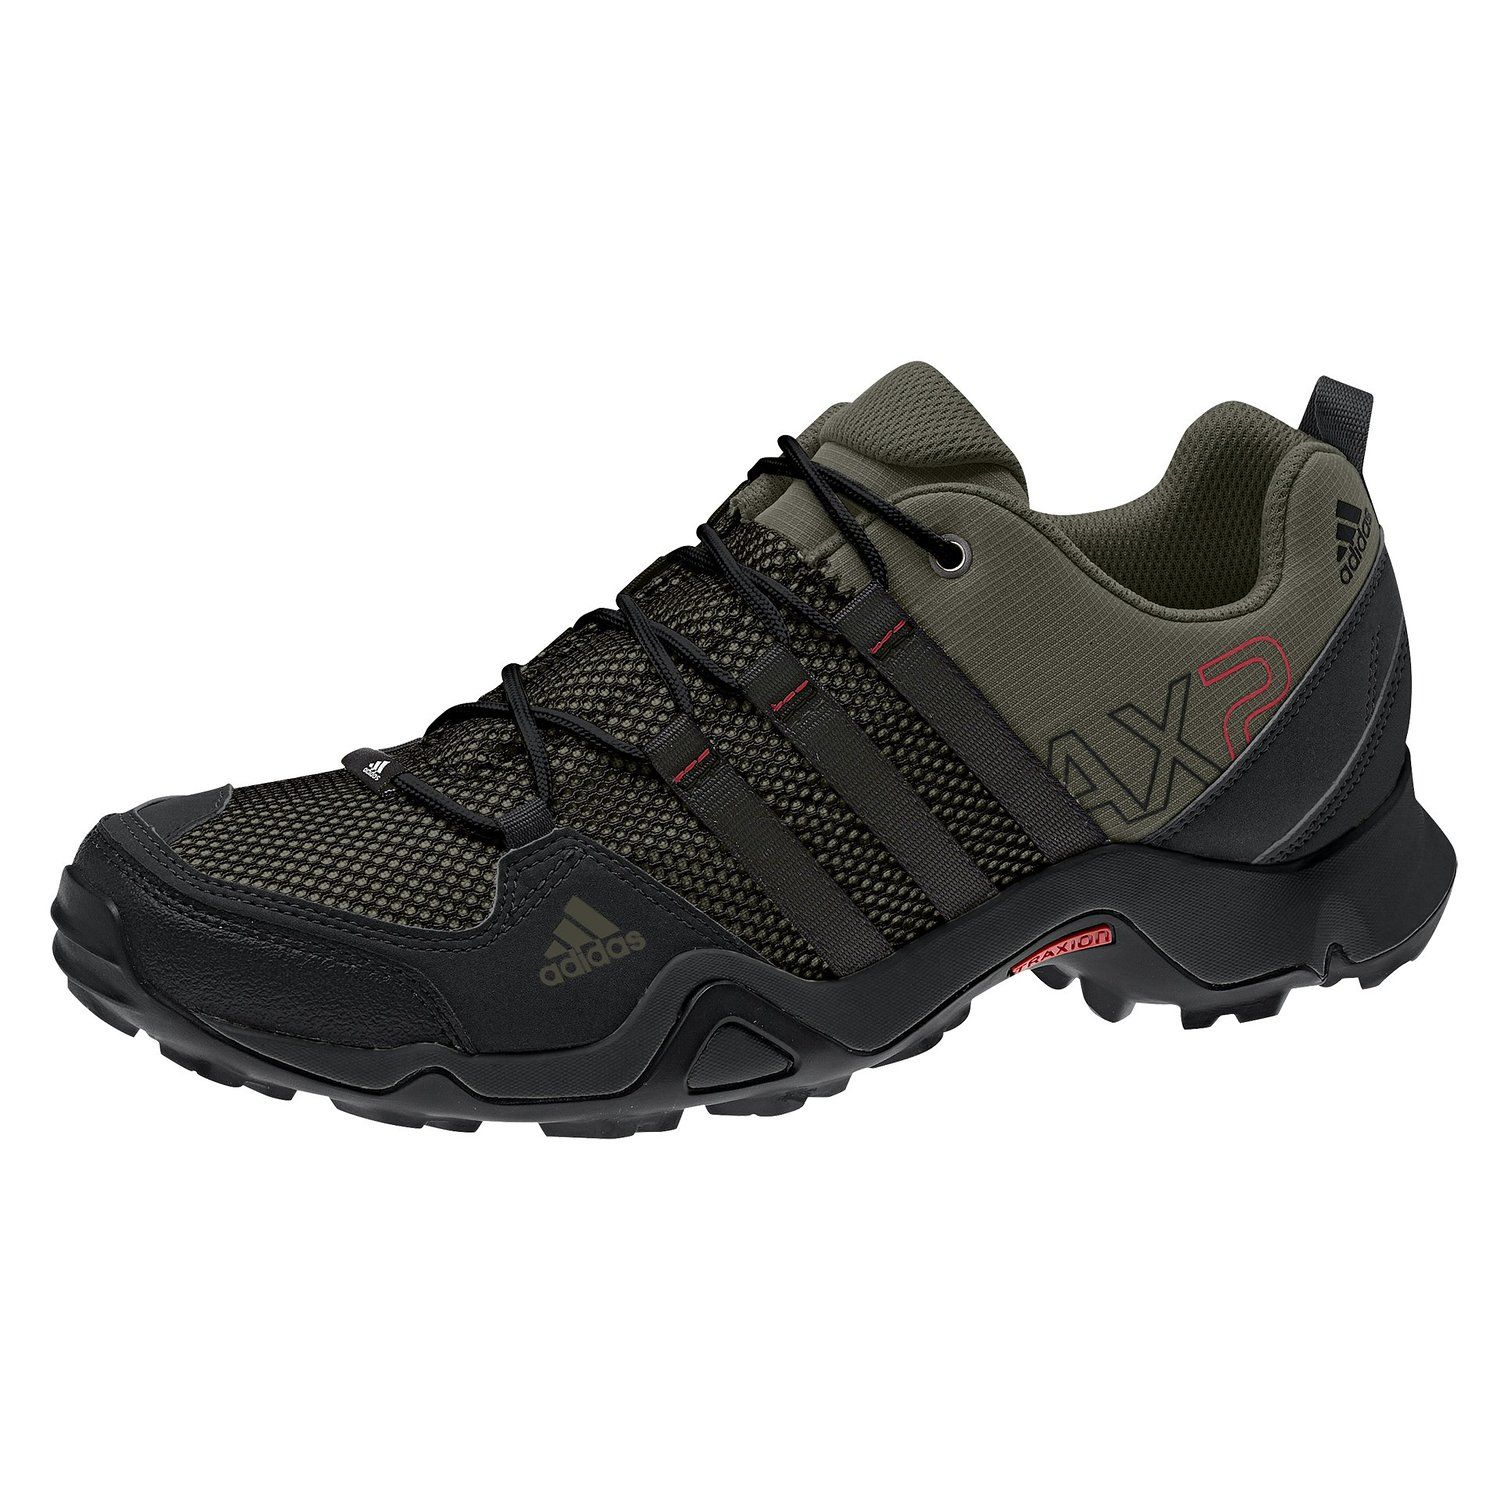 Amazon.com: adidas Outdoor AX2 Hiking Shoe - Men\u0027s: Shoes